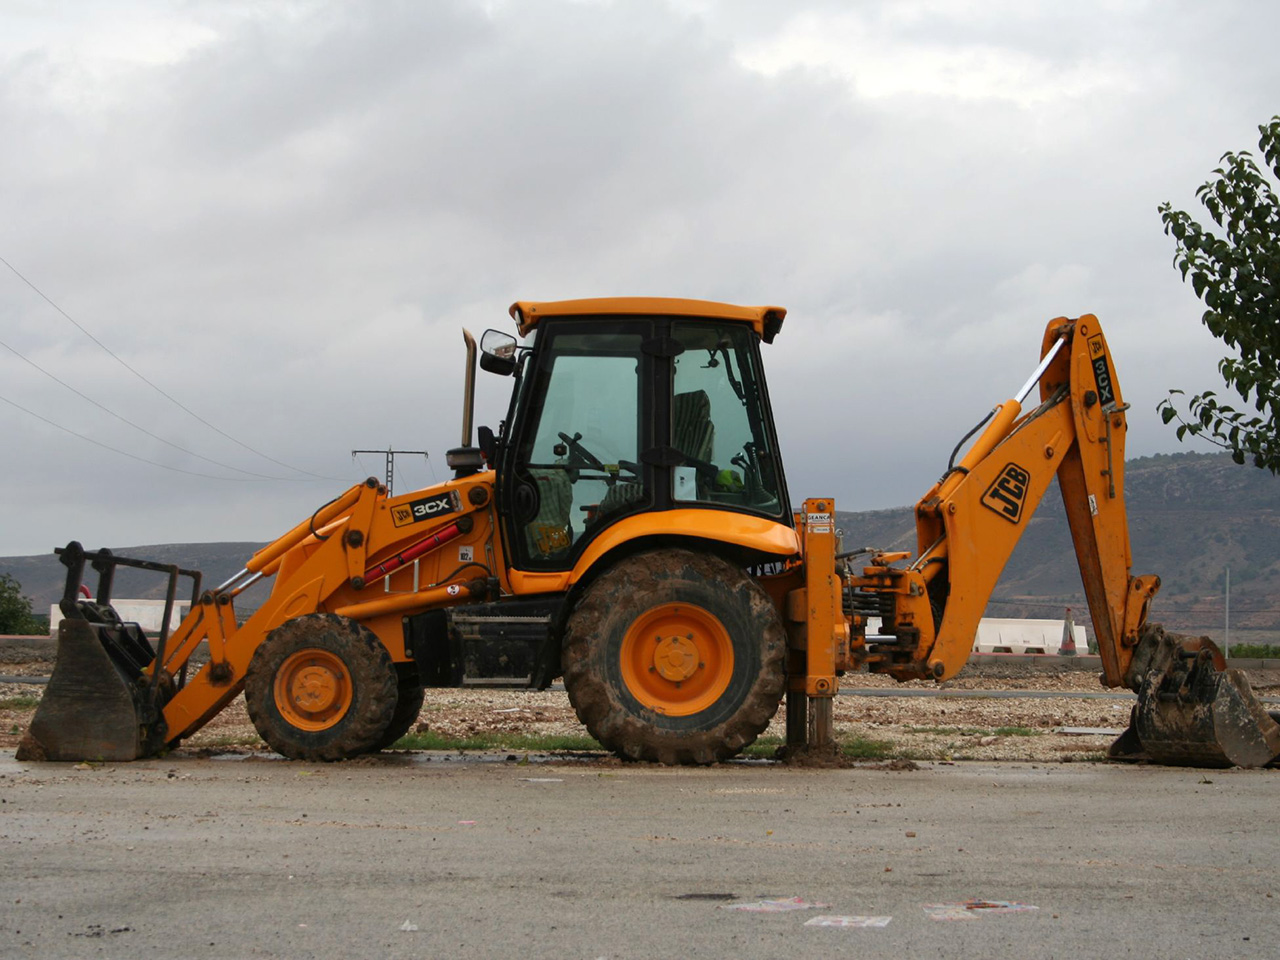 Jcb Photo Gallery 29 High Quality Jcb Pictures